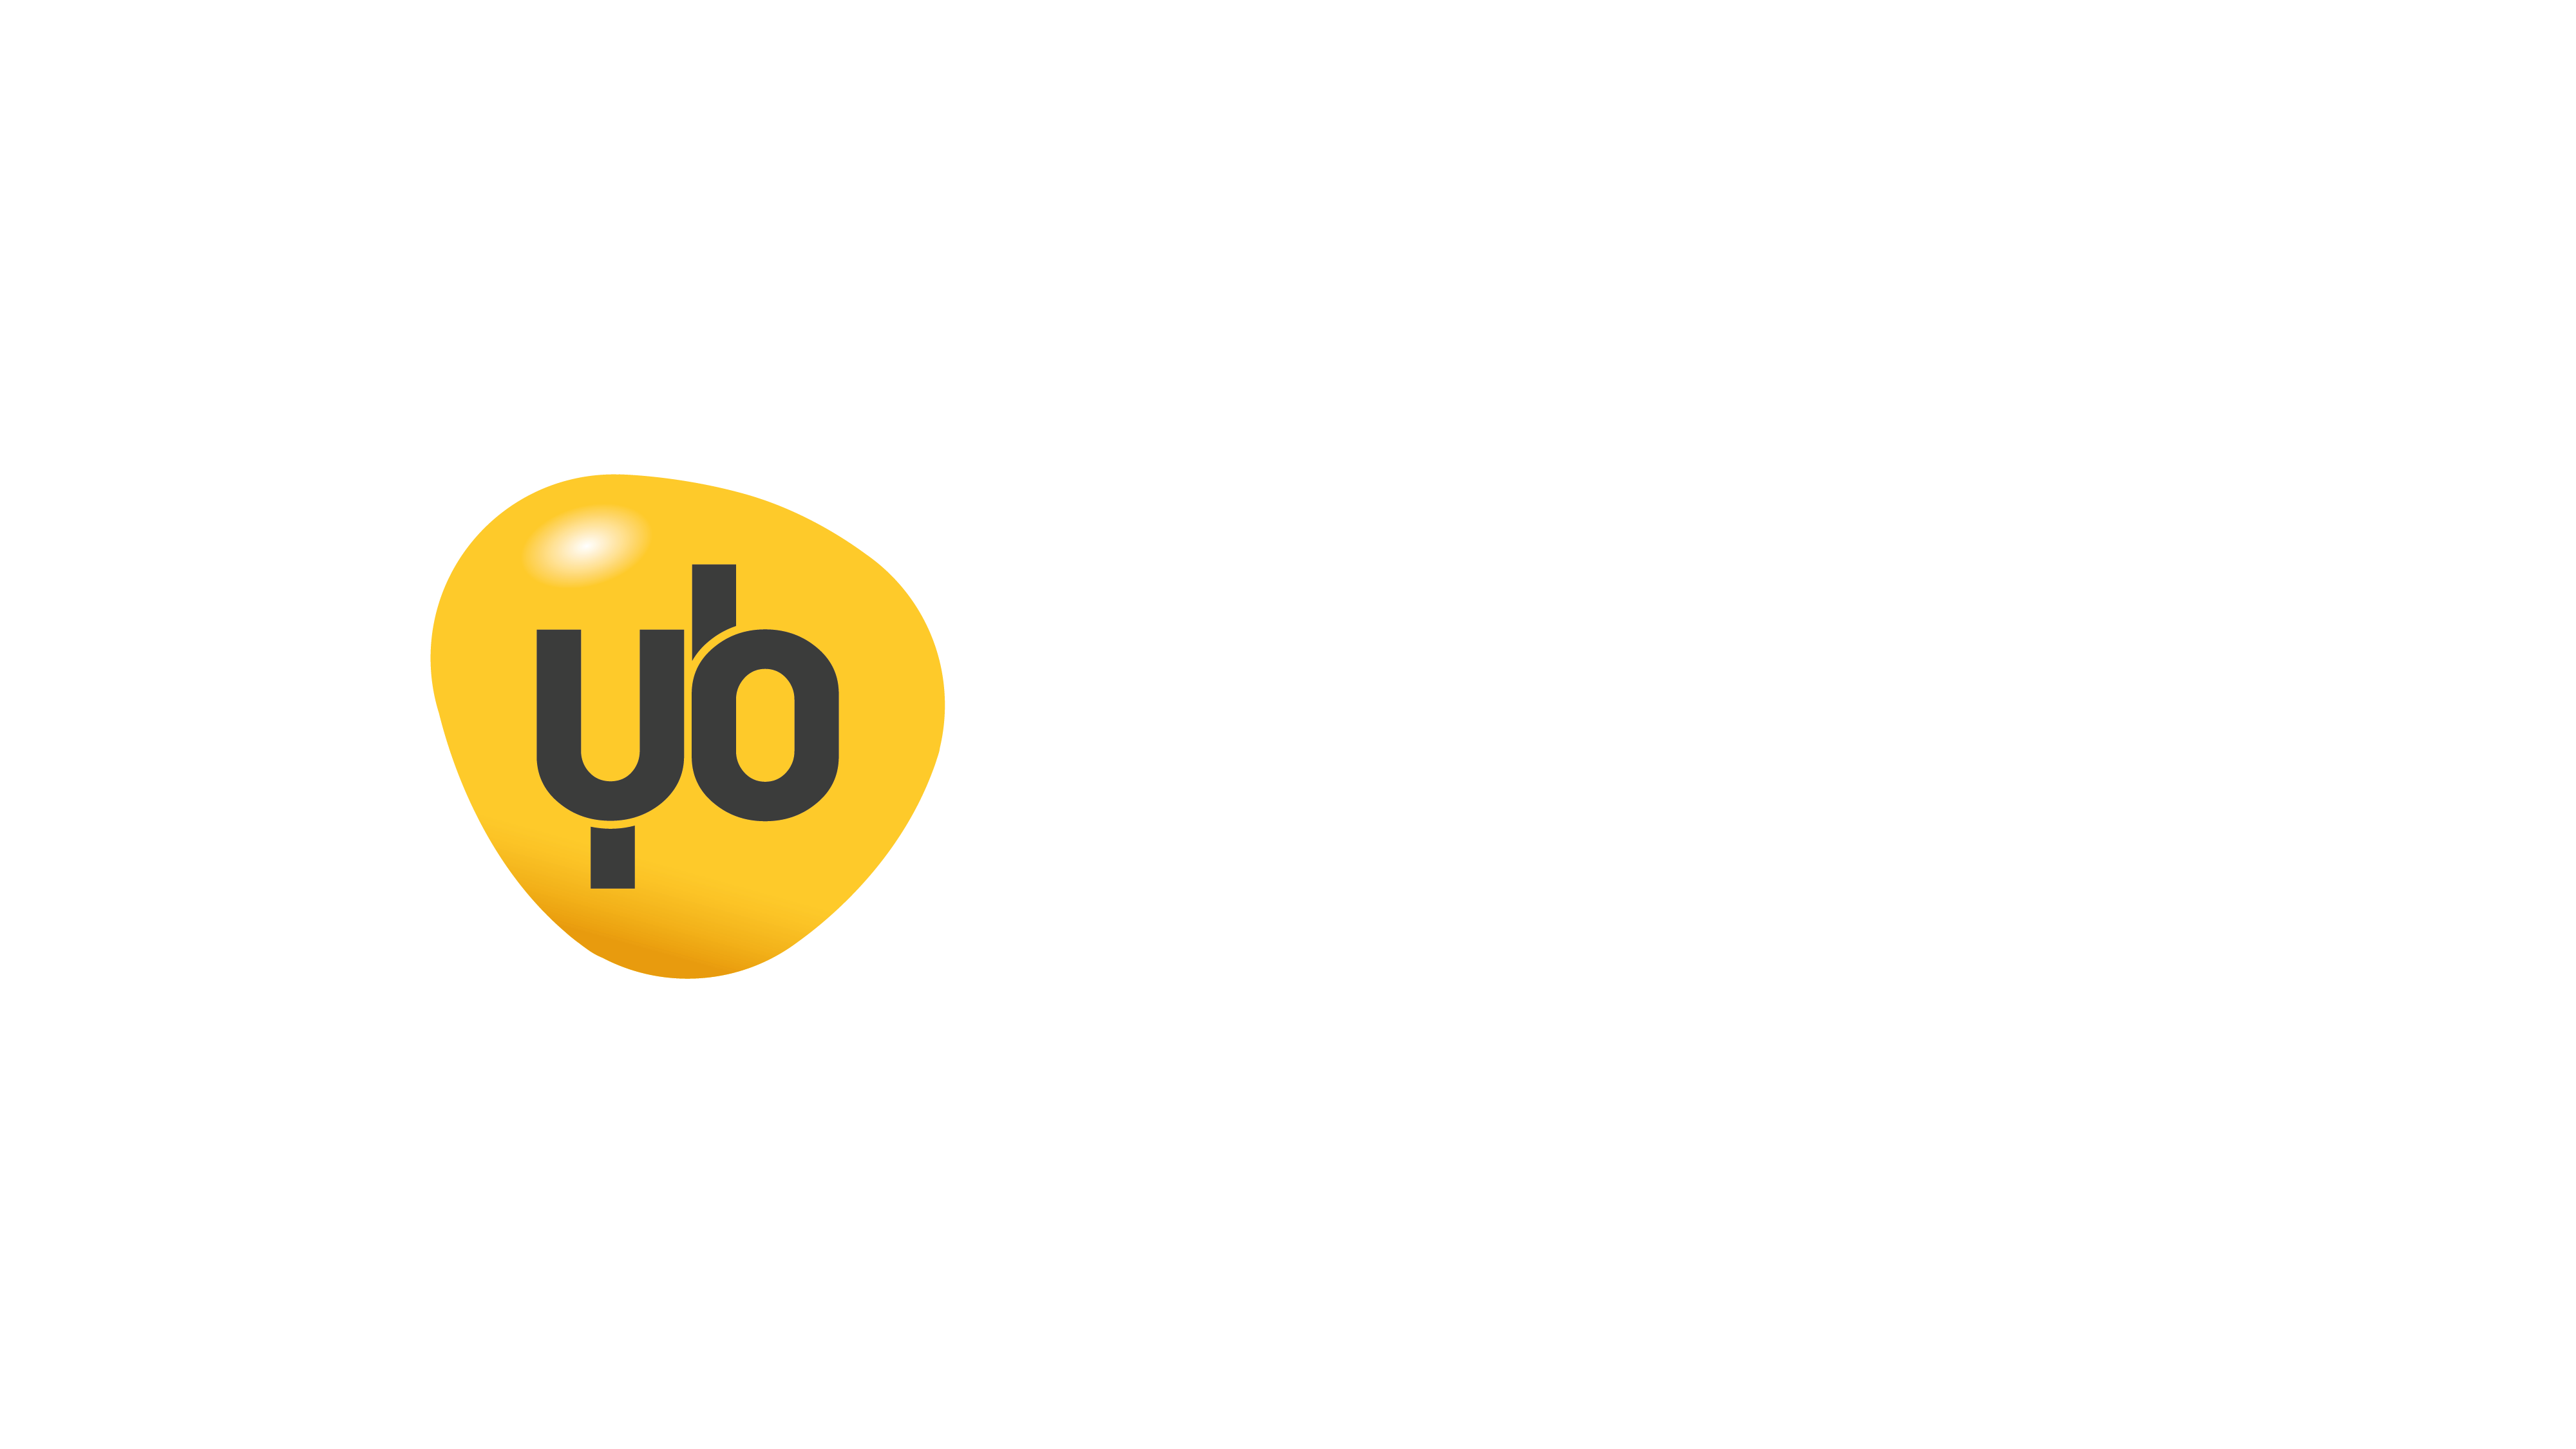 YELLOWBUS_LOGO_COLOUR_WHITE_TEXT_TRAN_150NEW-1